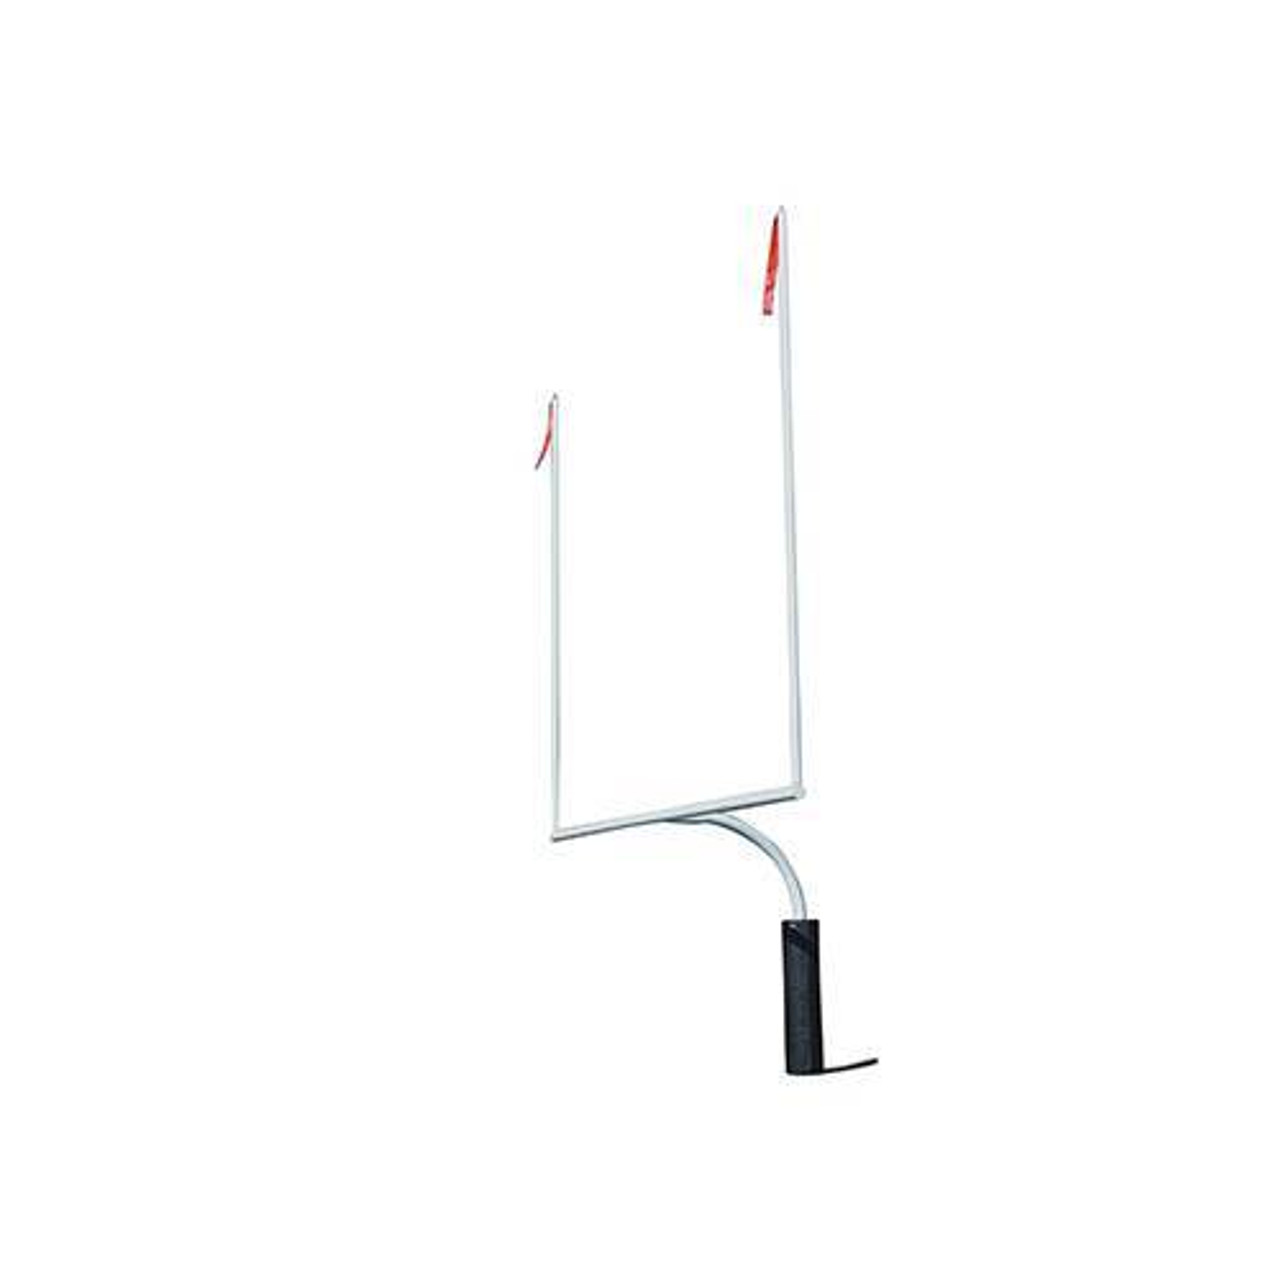 H.S. Football Goalposts with 30' Upright - White